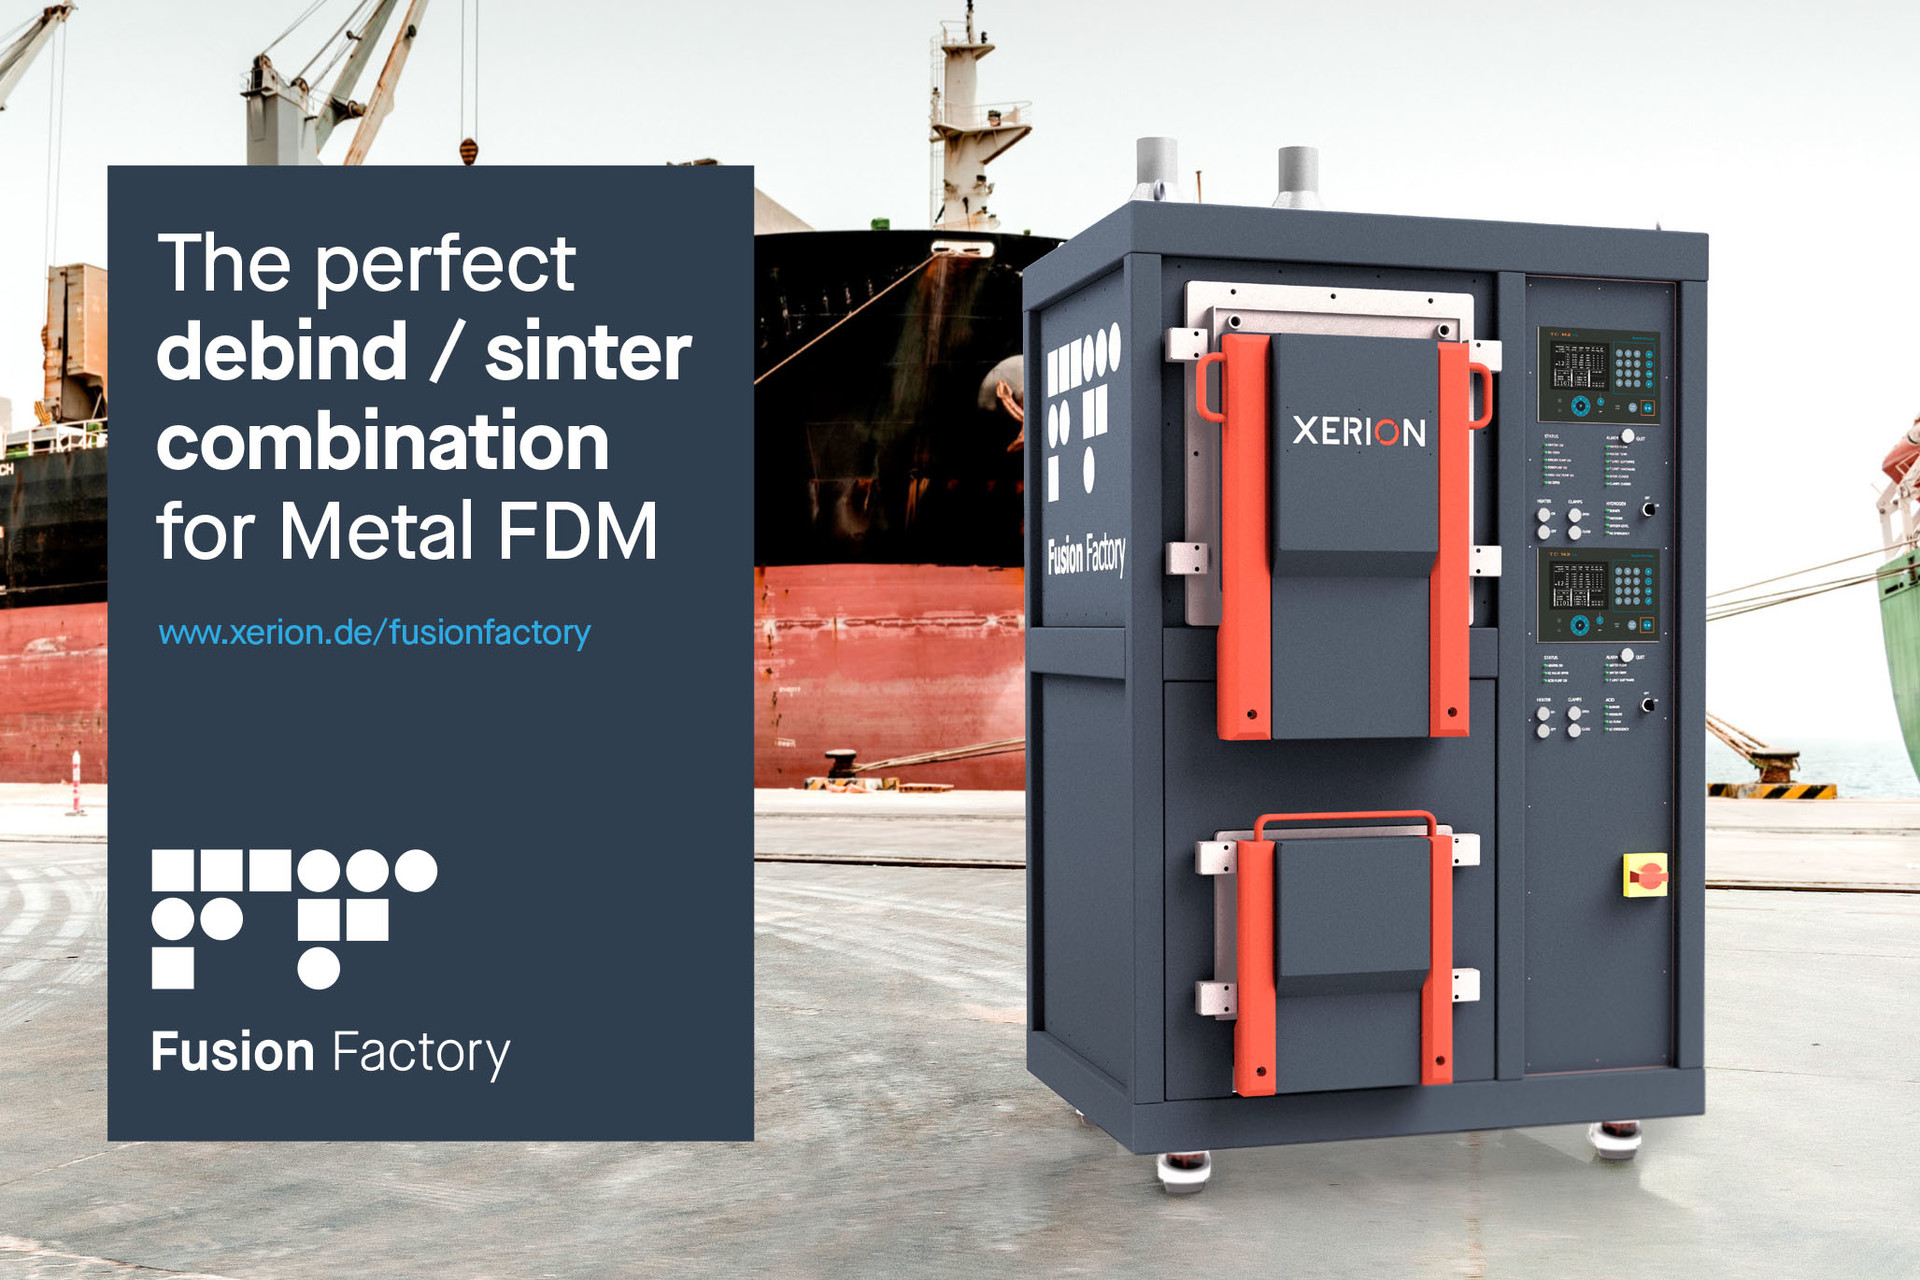 Dutch Aerospace Centre (NLR) to install Xerion Fusion Factory Compact (Powder Injection Moulding International)